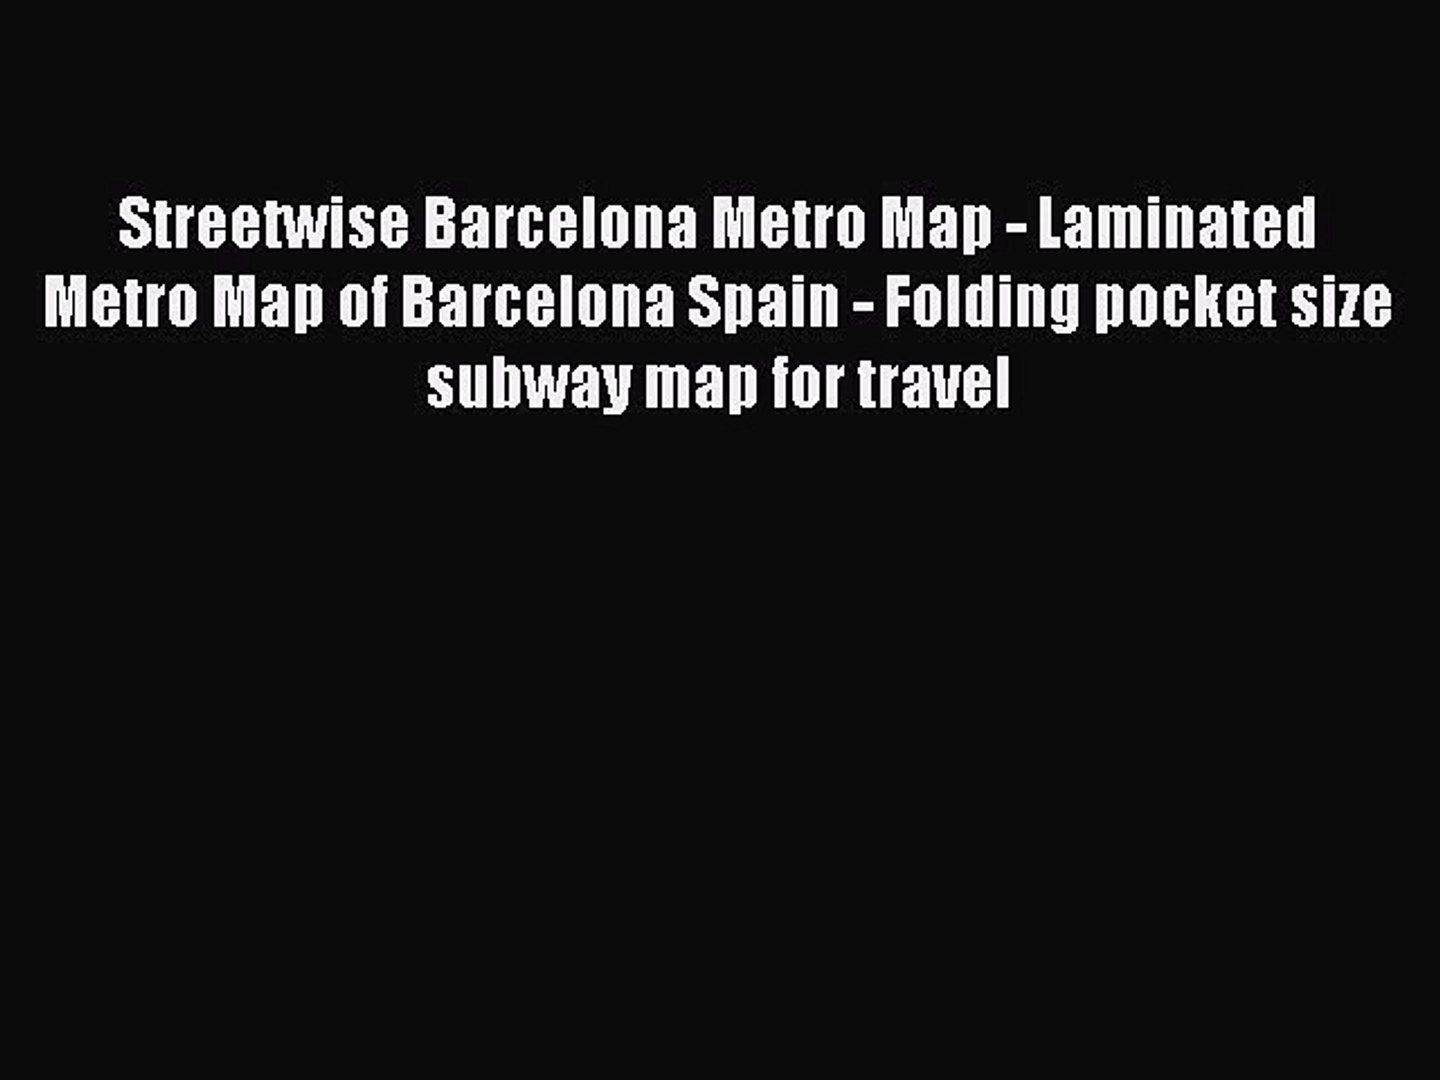 Subway Map Of Barcelona Spain.Pdf Streetwise Barcelona Metro Map Laminated Metro Map Of Barcelona Spain Folding Pocket